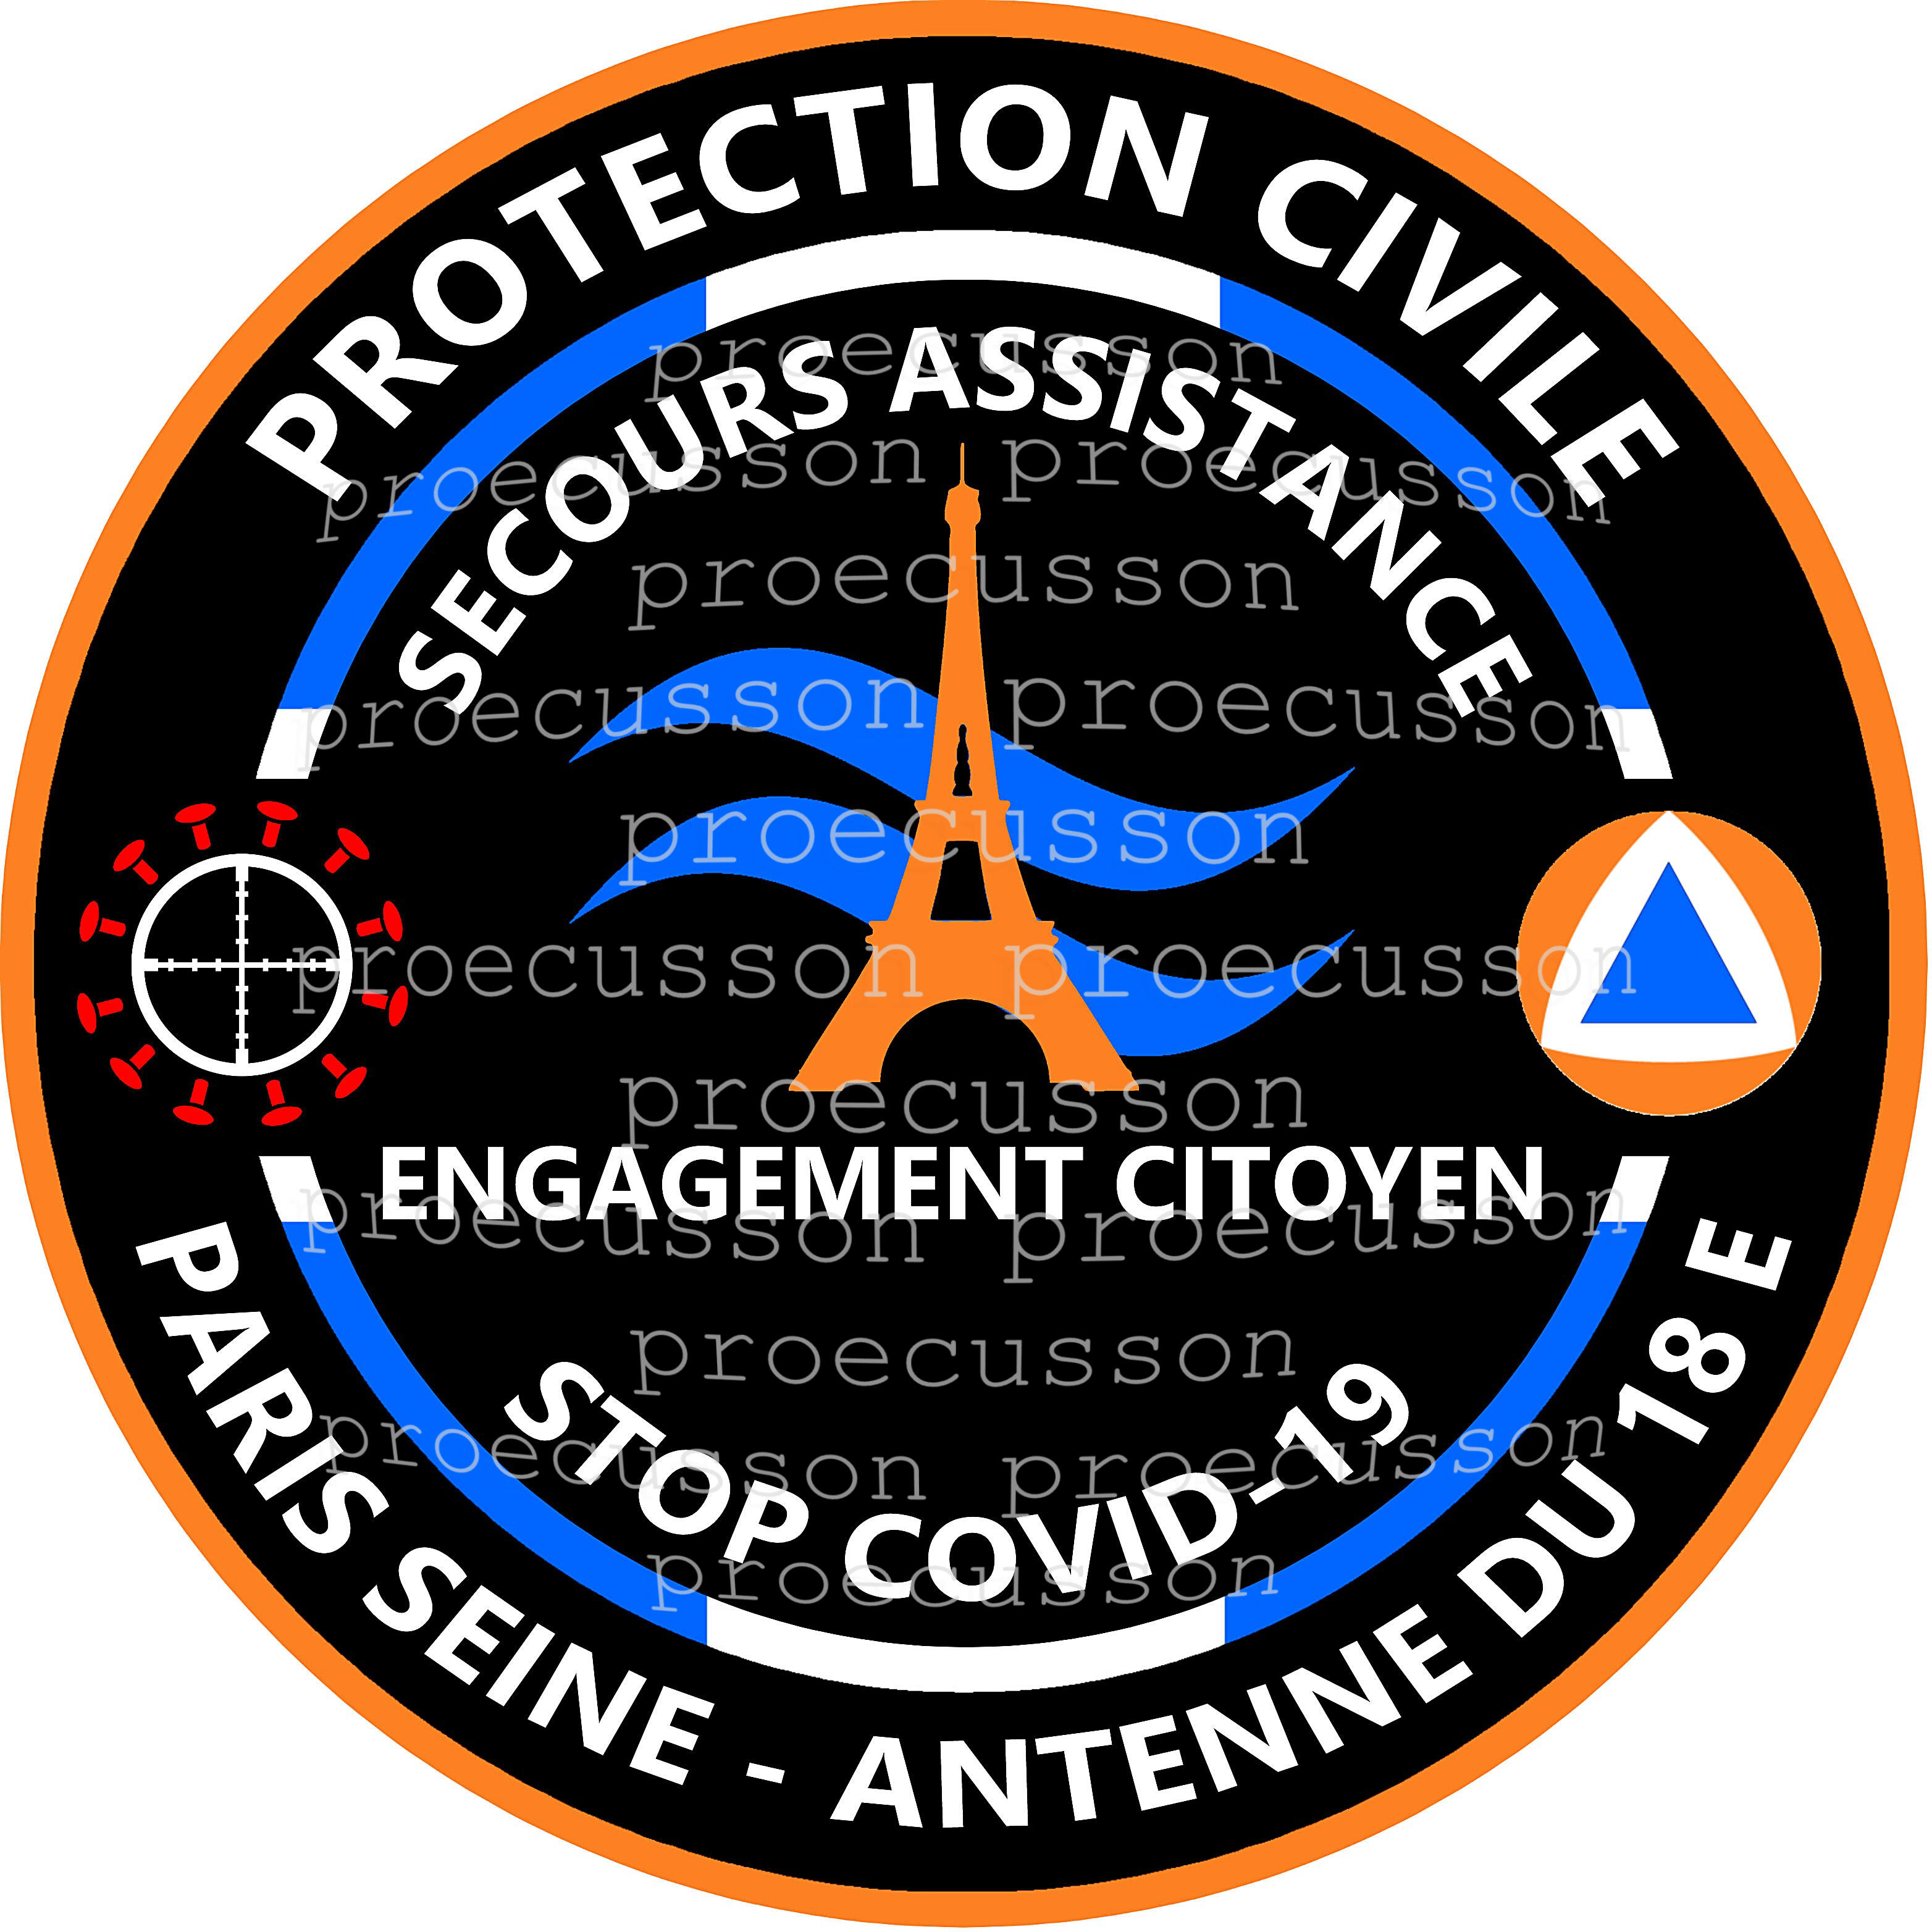 PROTECTION CIVILE PARIS SEINE